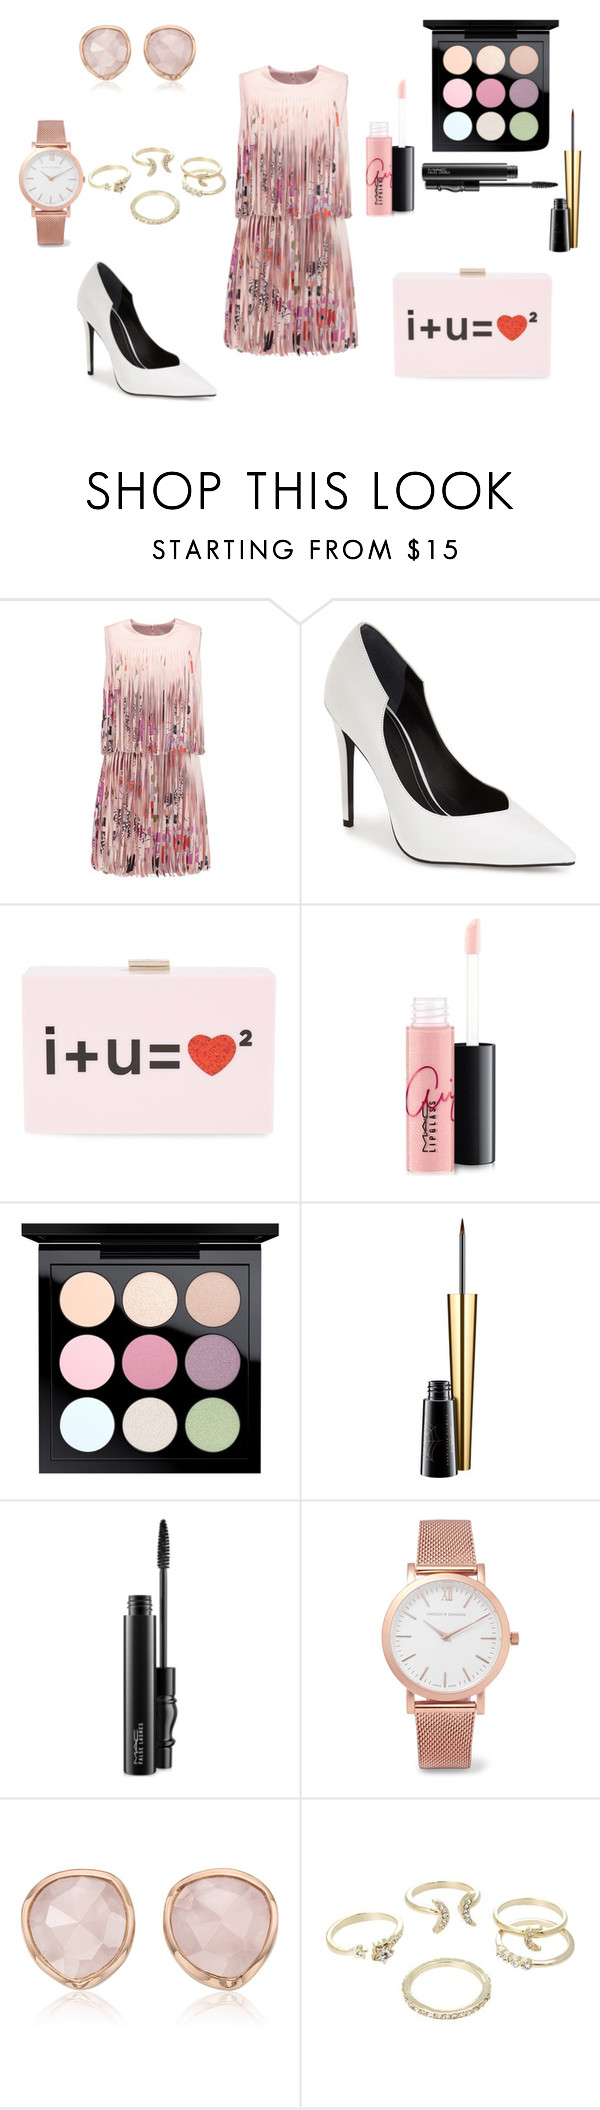 """""""Sin título #127"""" by sylvia-aylin on Polyvore featuring moda, Alexis, Kendall + Kylie, Kate Spade, MAC Cosmetics, Larsson & Jennings, Monica Vinader y Lipsy"""